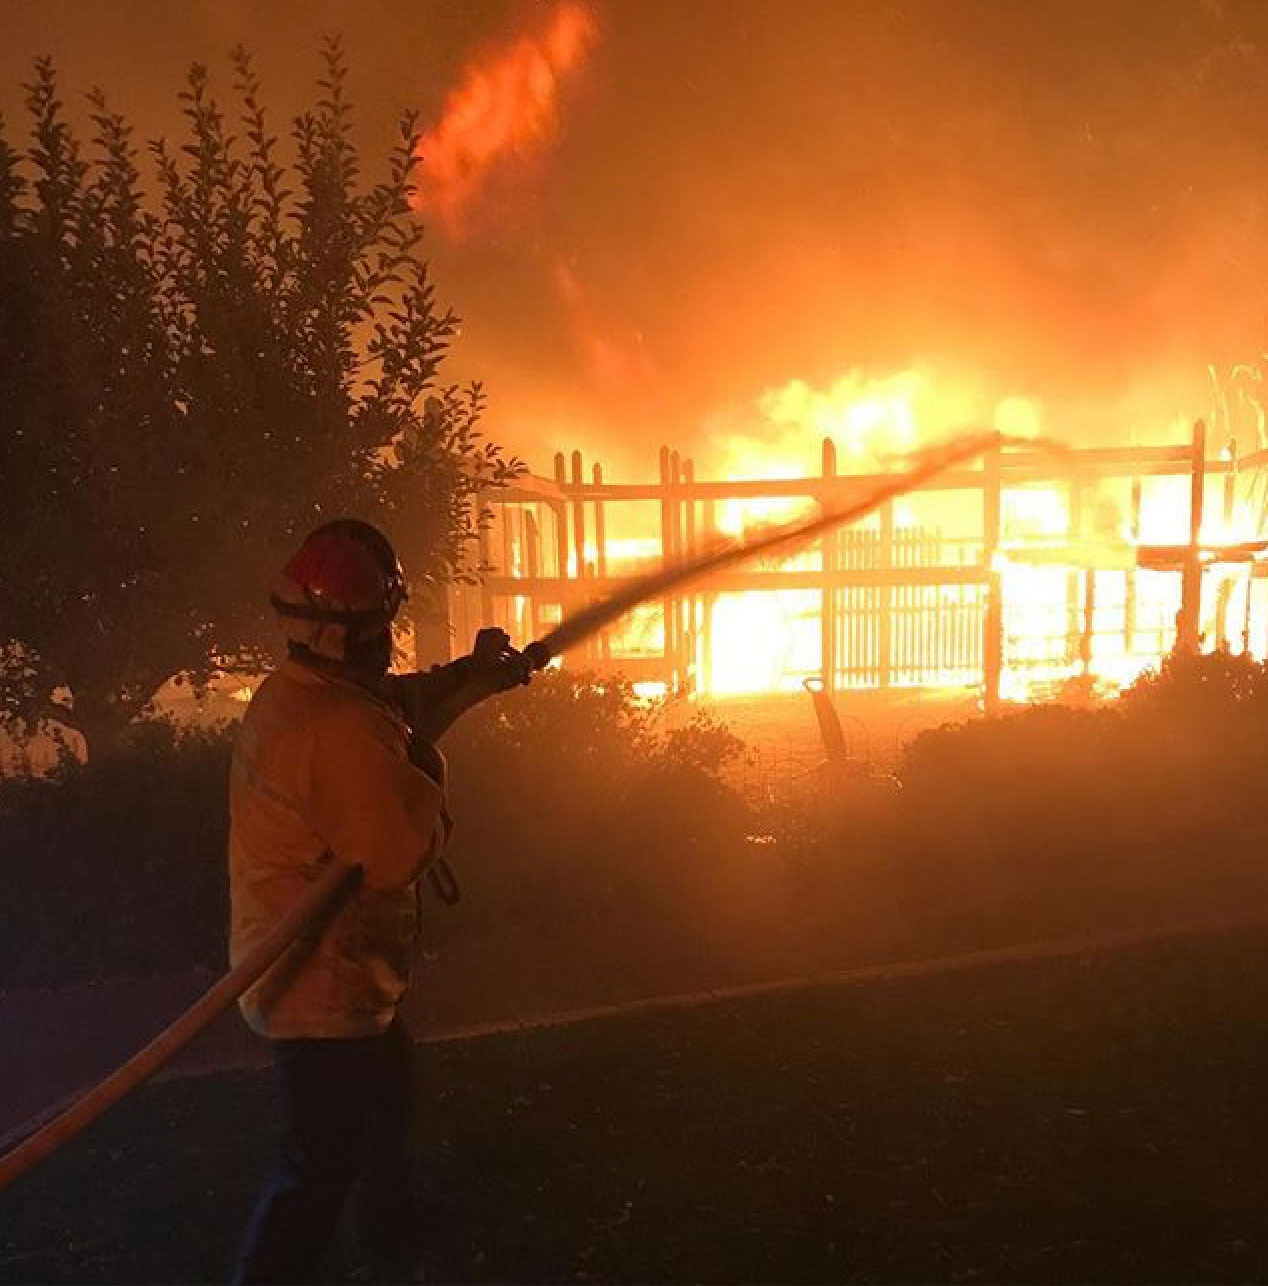 <div class='meta'><div class='origin-logo' data-origin='none'></div><span class='caption-text' data-credit='windsor_fire/Instagram'>Windsor Fire posted this action shot and thanked the community for their support.</span></div>